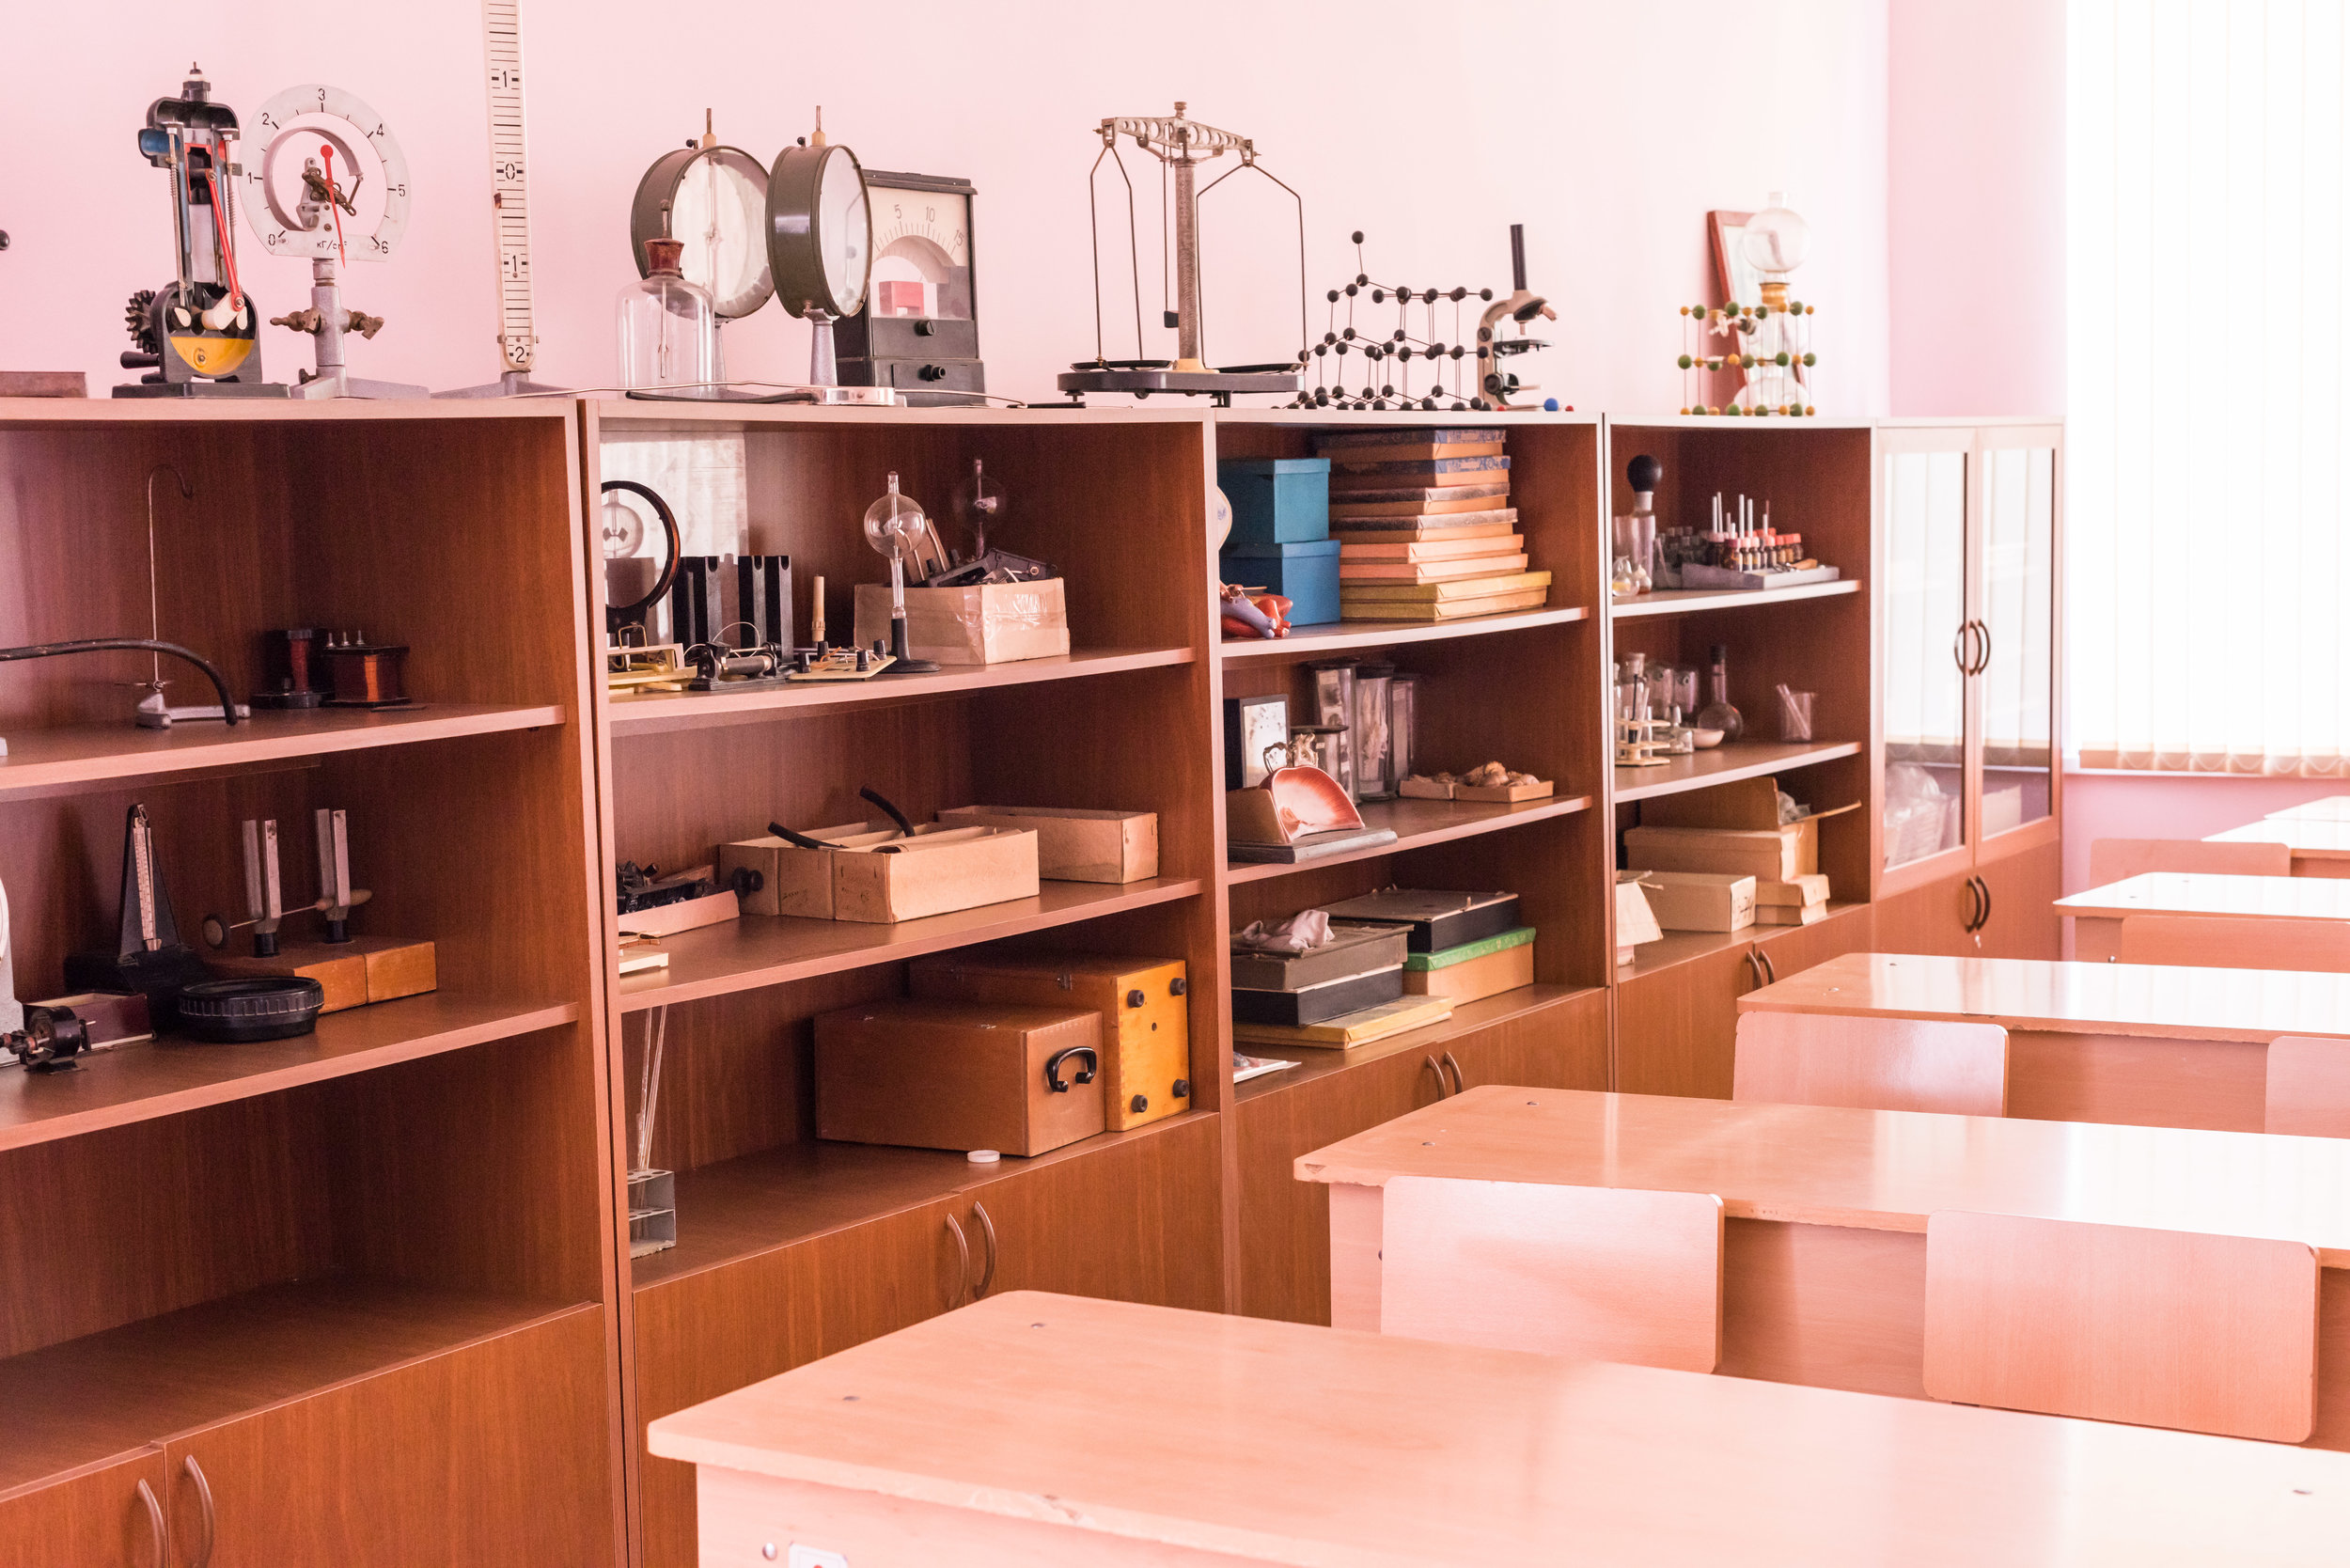 Science lab in Navur, renovated with help from FAR.